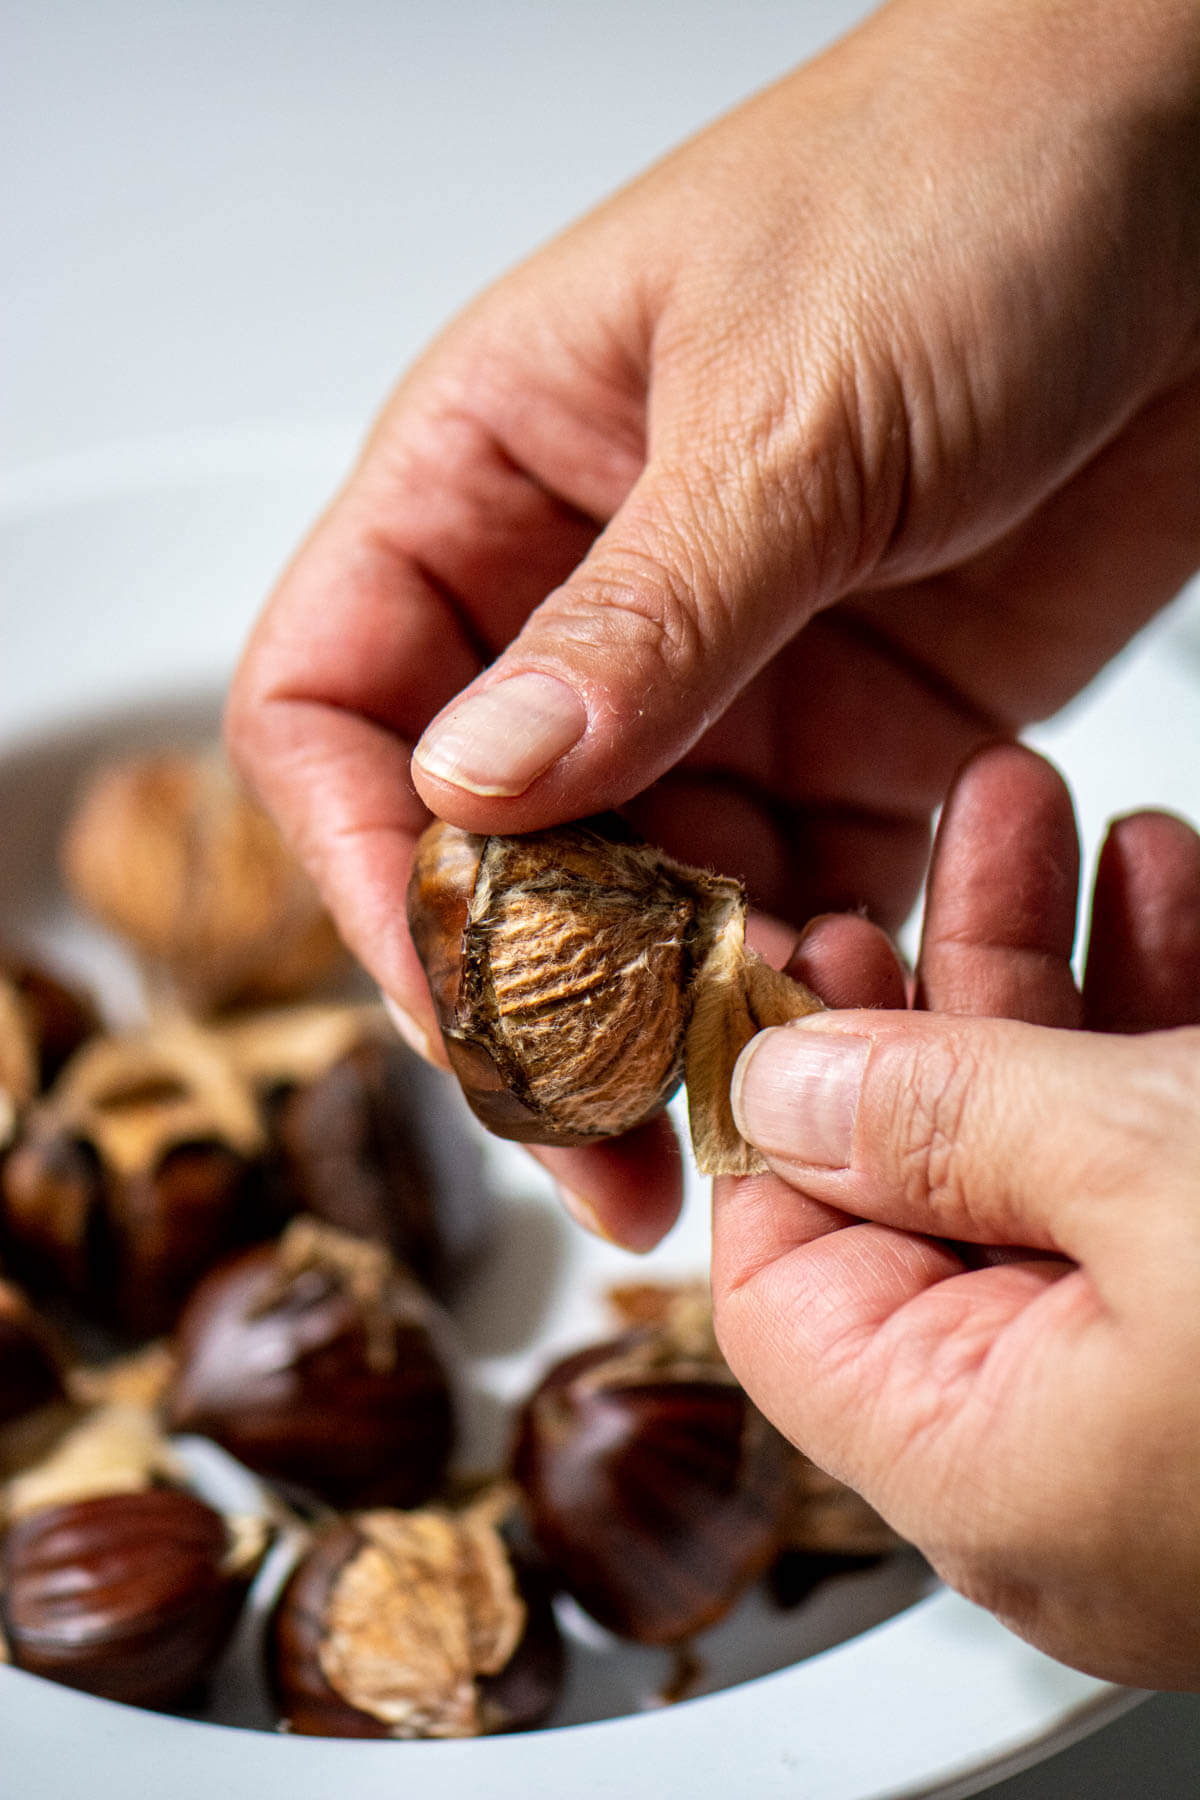 peeling chestnuts by hand when they are still warm